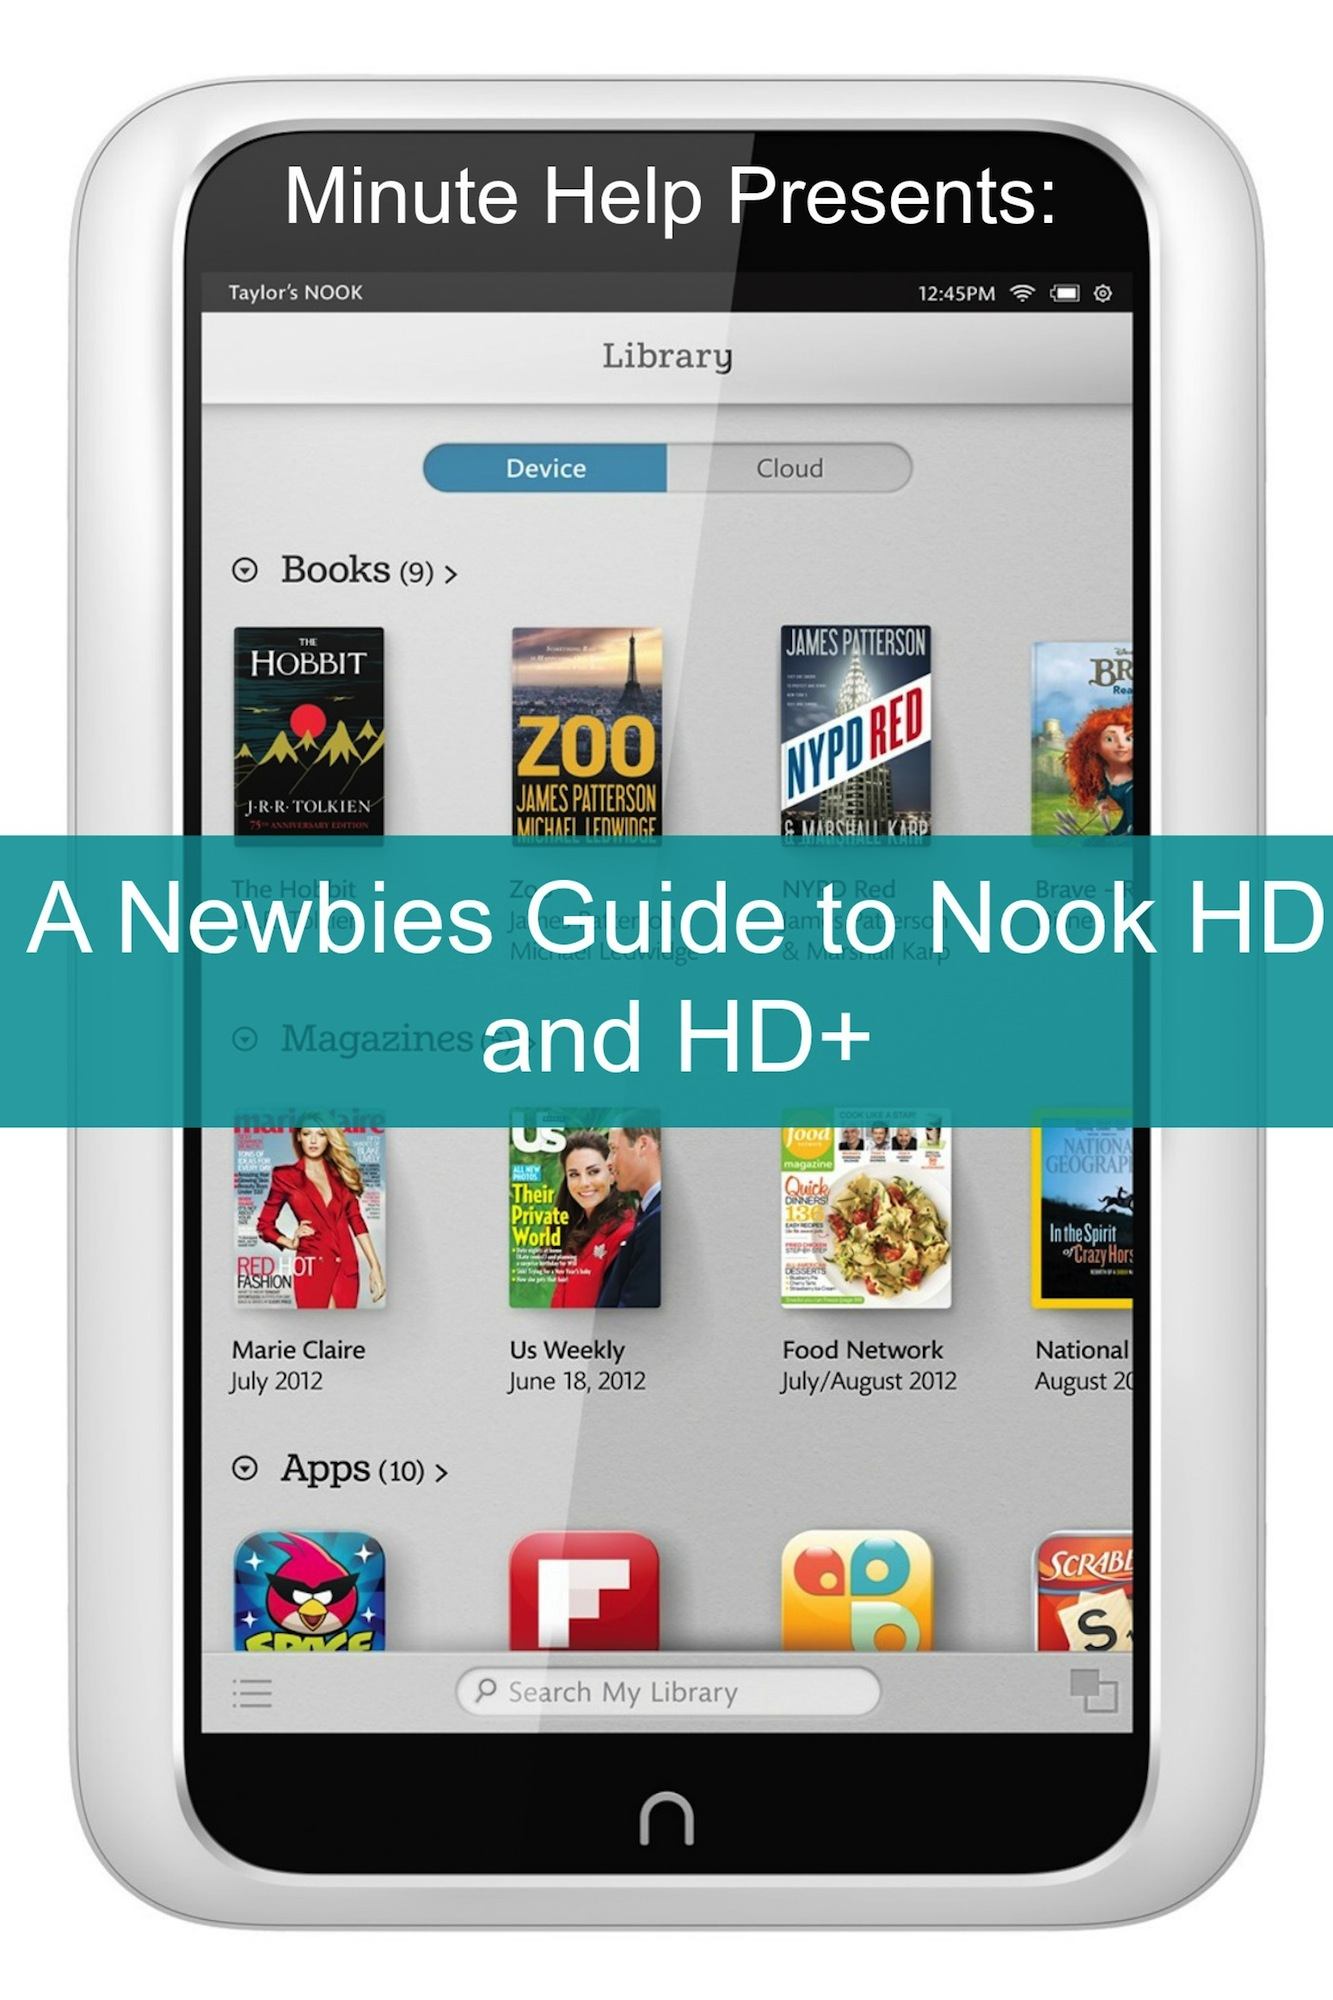 A Newbies Guide to Nook HD and HD+